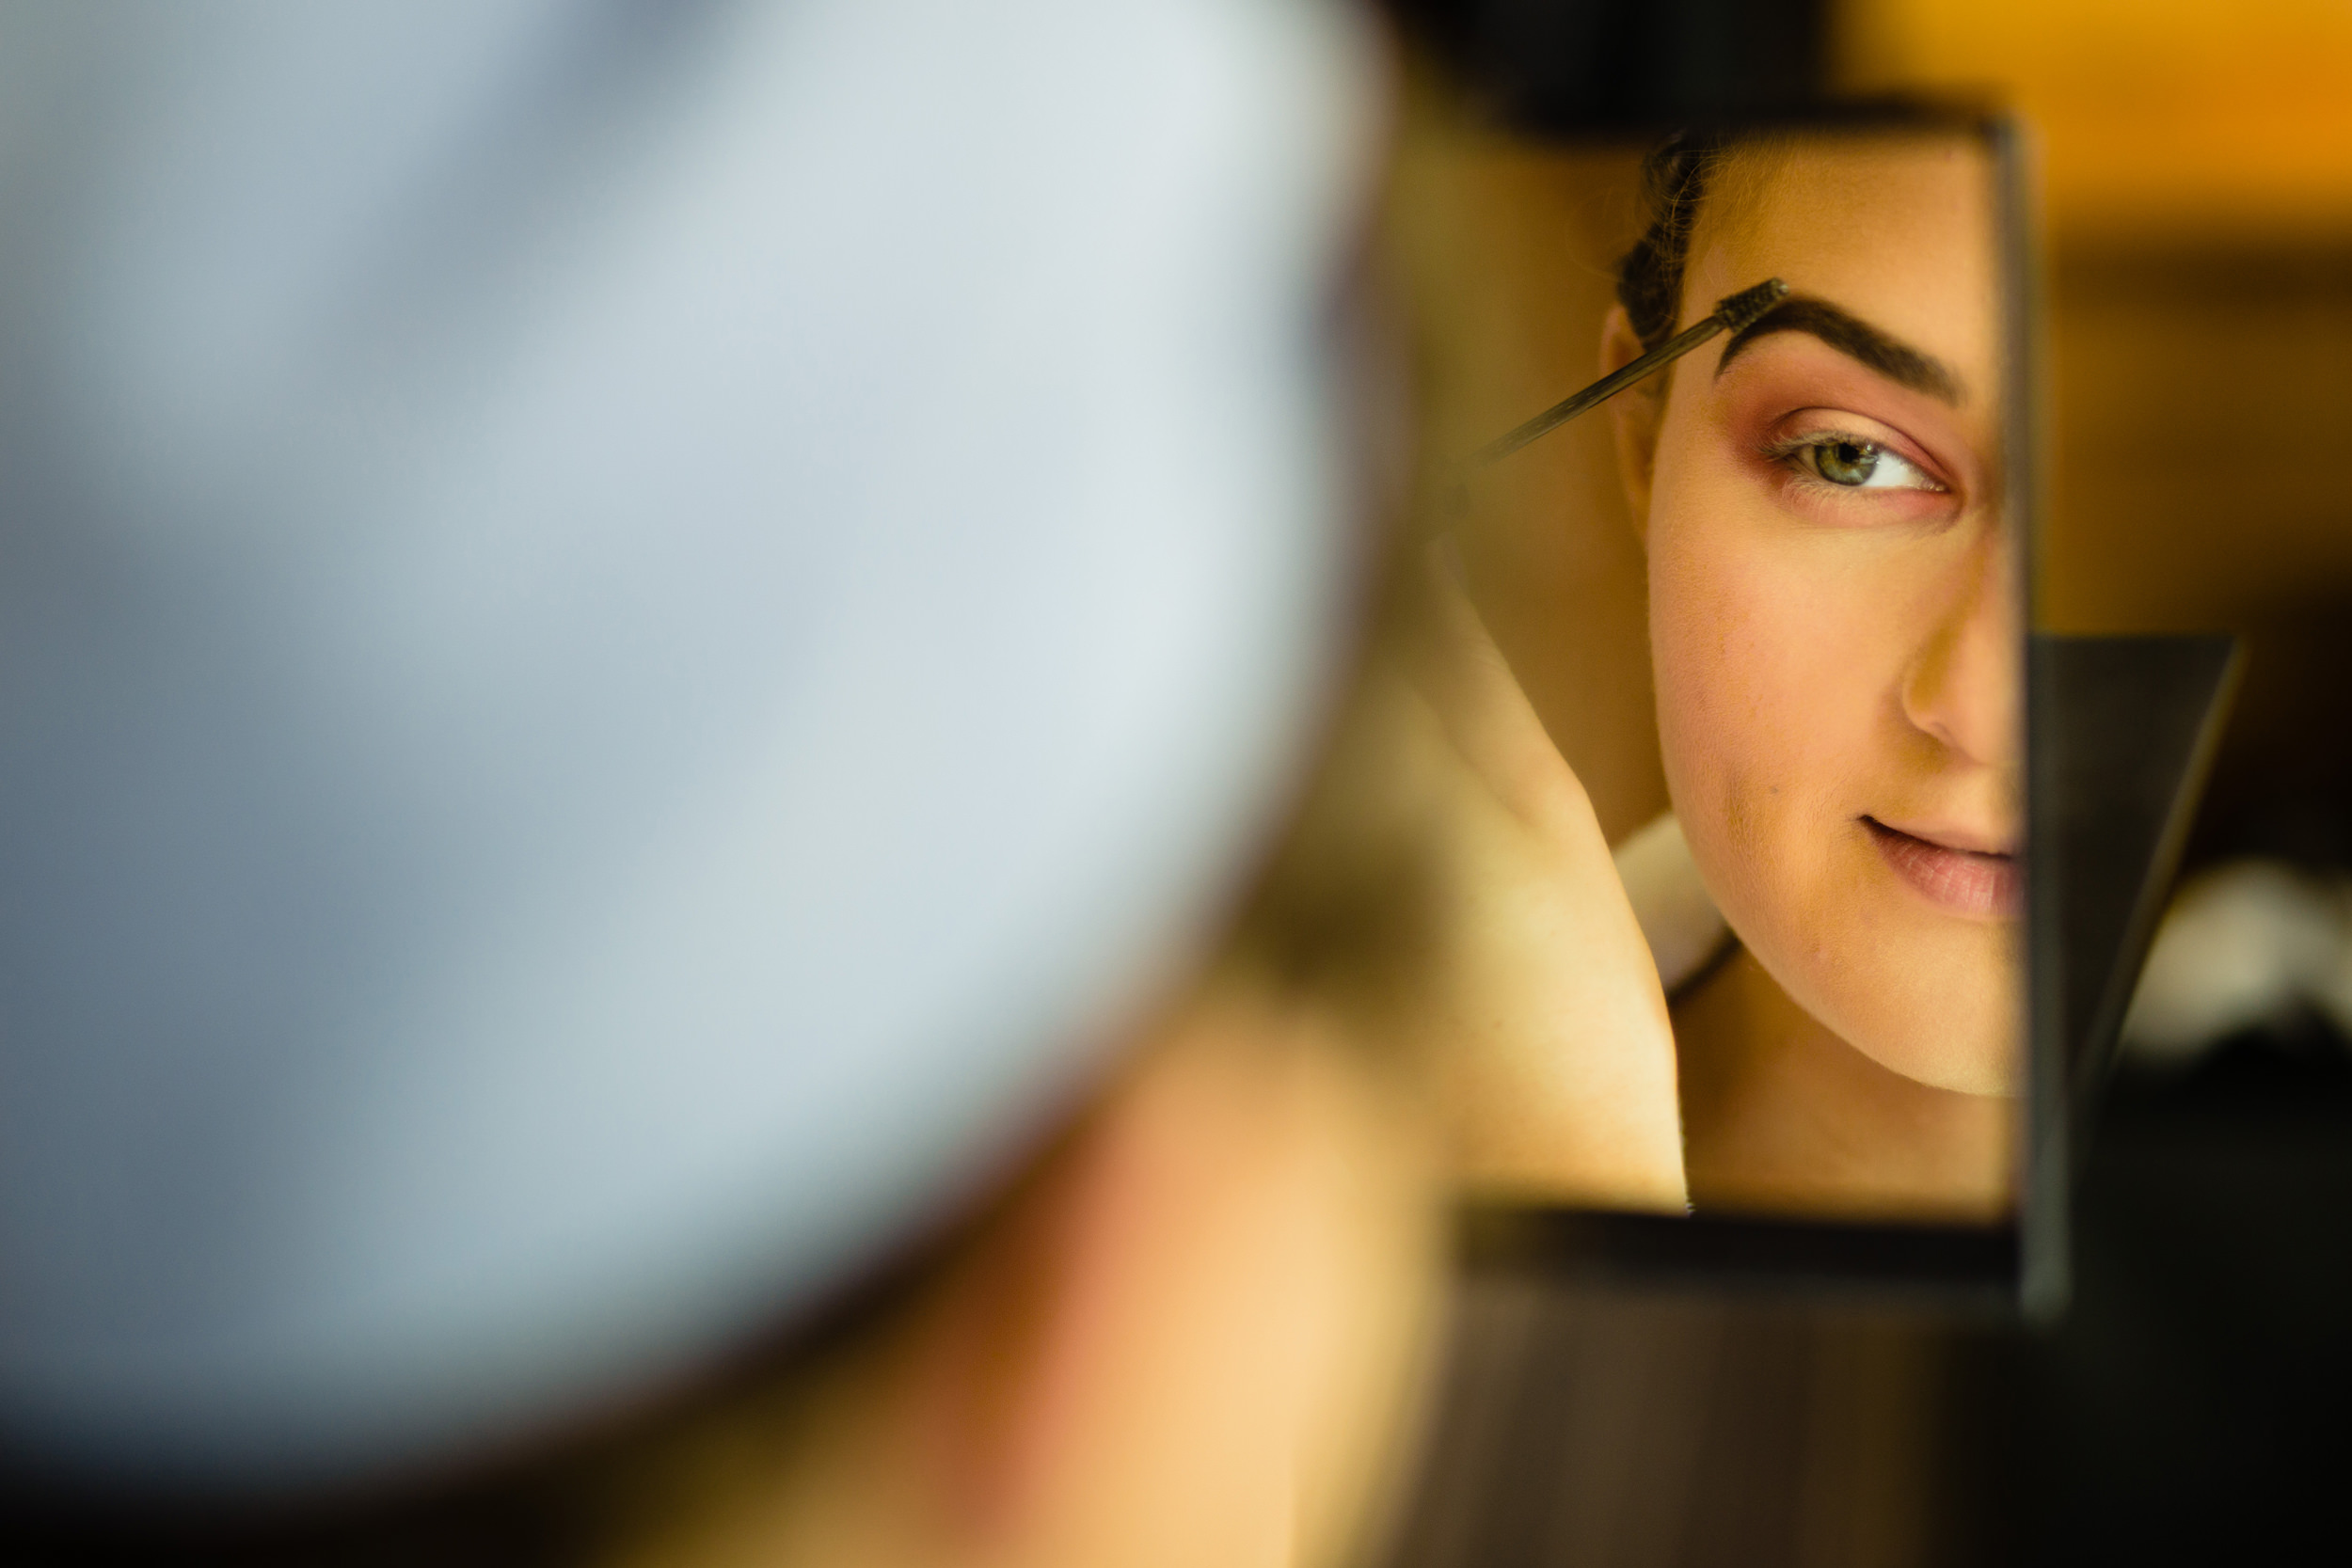 close-up of lady doing eye makeup. plough inn, hathersage wedding photography by emma and rich.